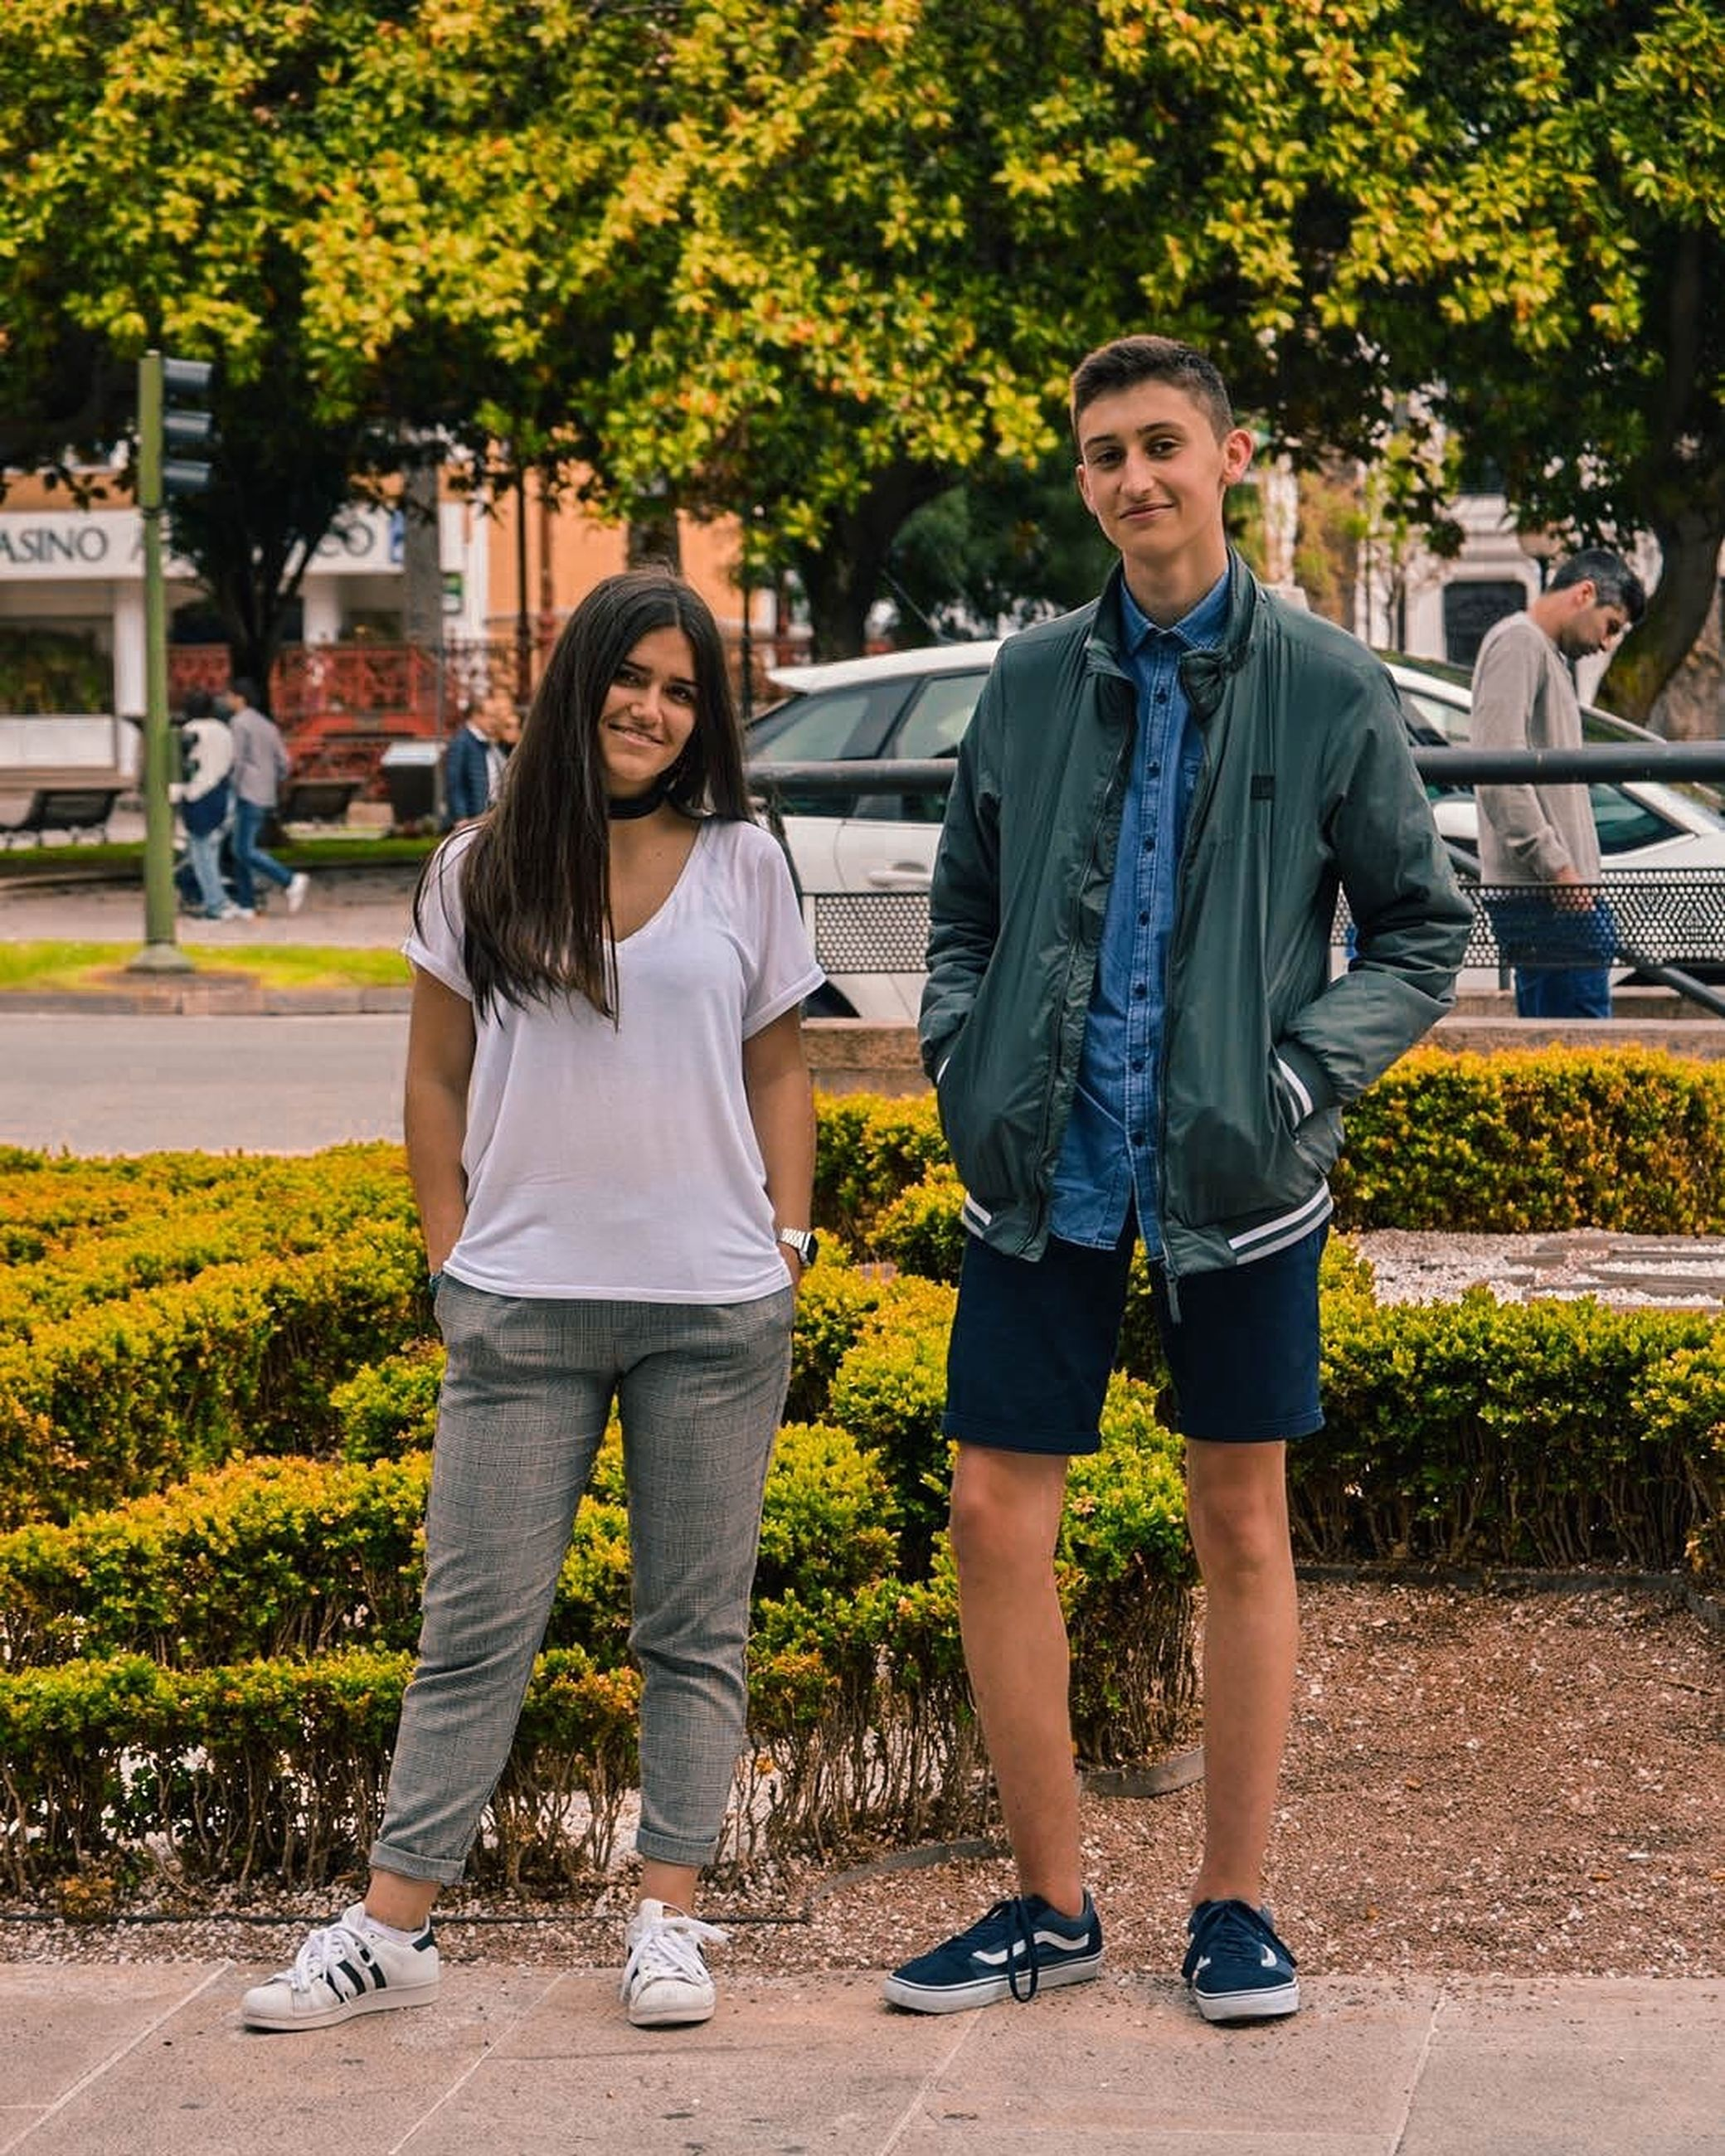 full length, two people, smiling, togetherness, front view, outdoors, happiness, casual clothing, looking at camera, young adult, portrait, day, young women, love, lifestyles, cheerful, friendship, standing, bonding, real people, tree, men, adult, people, adults only